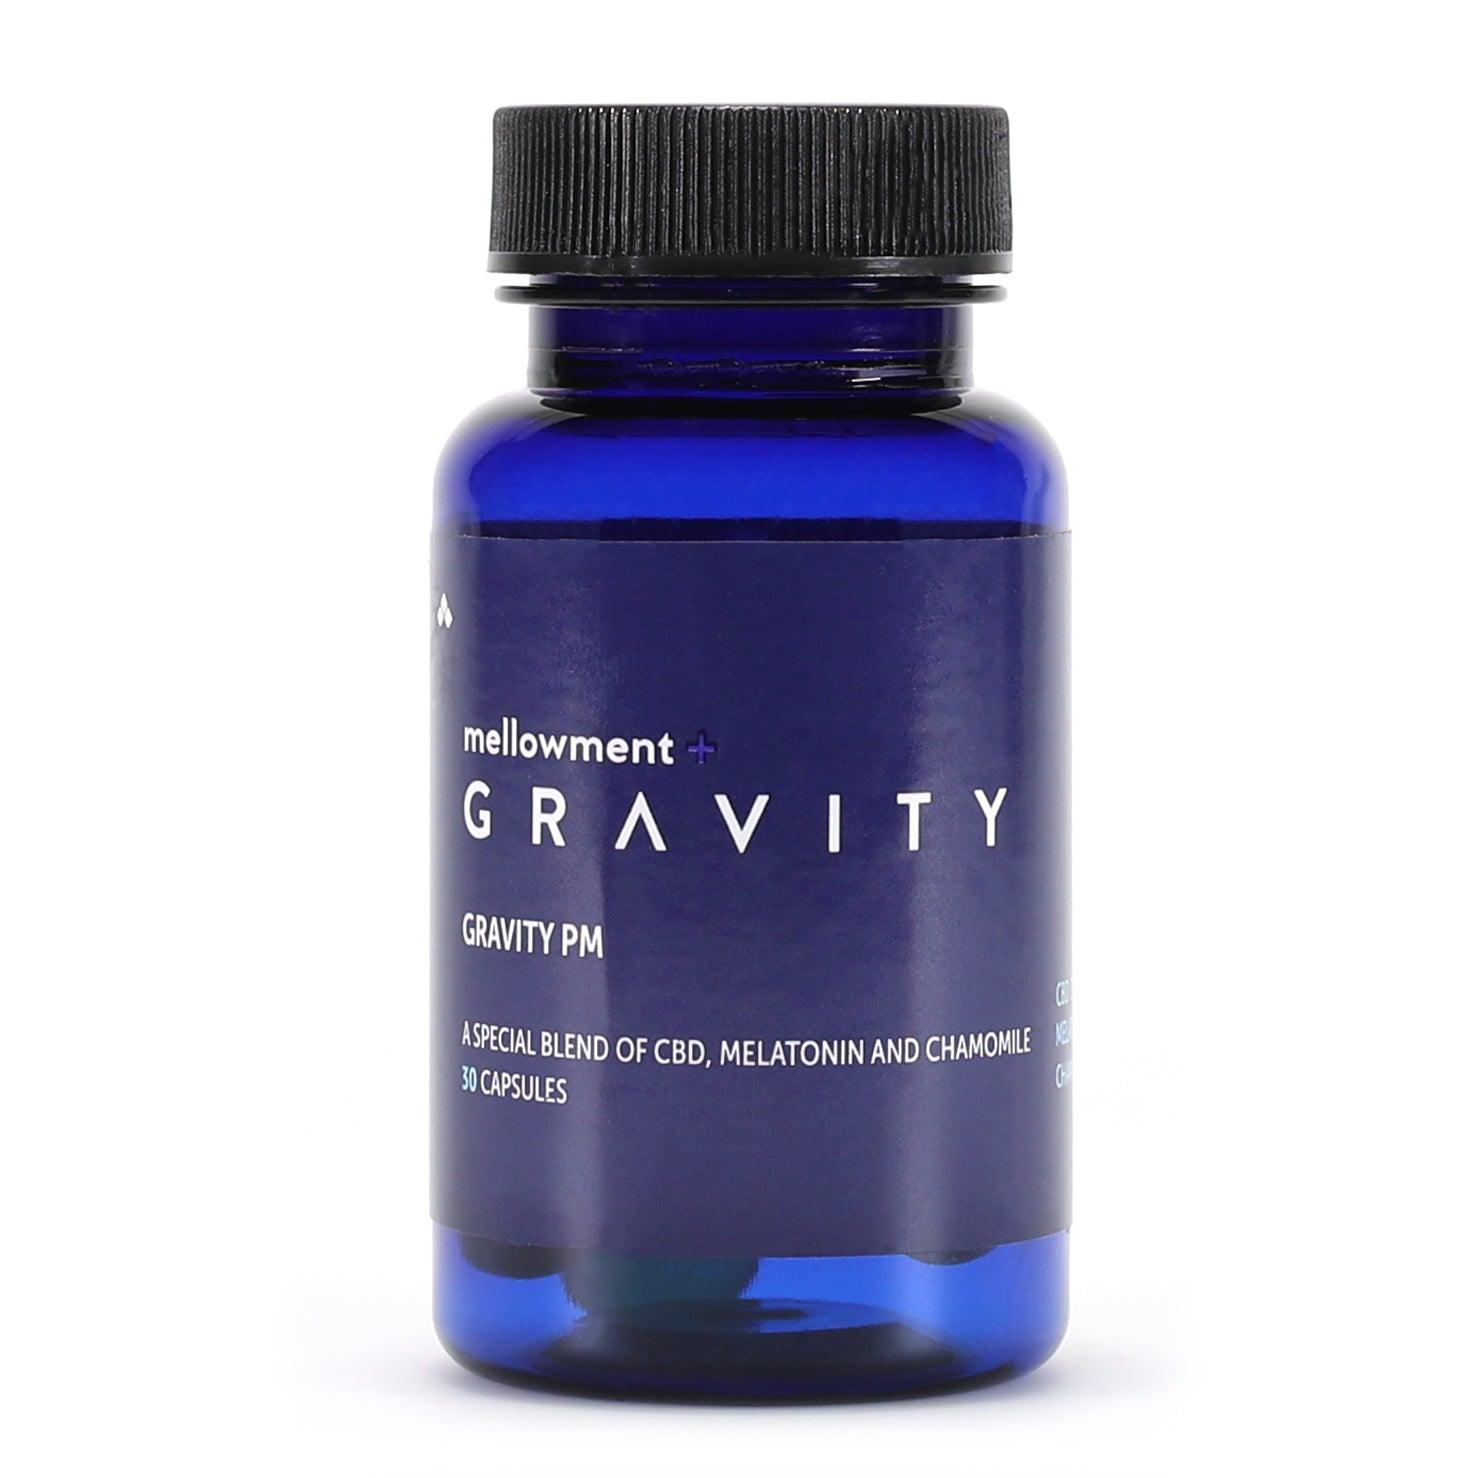 CBD Supplement (4 colors) - Photography and Web Design - Los Angeles, US based Shopify Experts Revo Designs